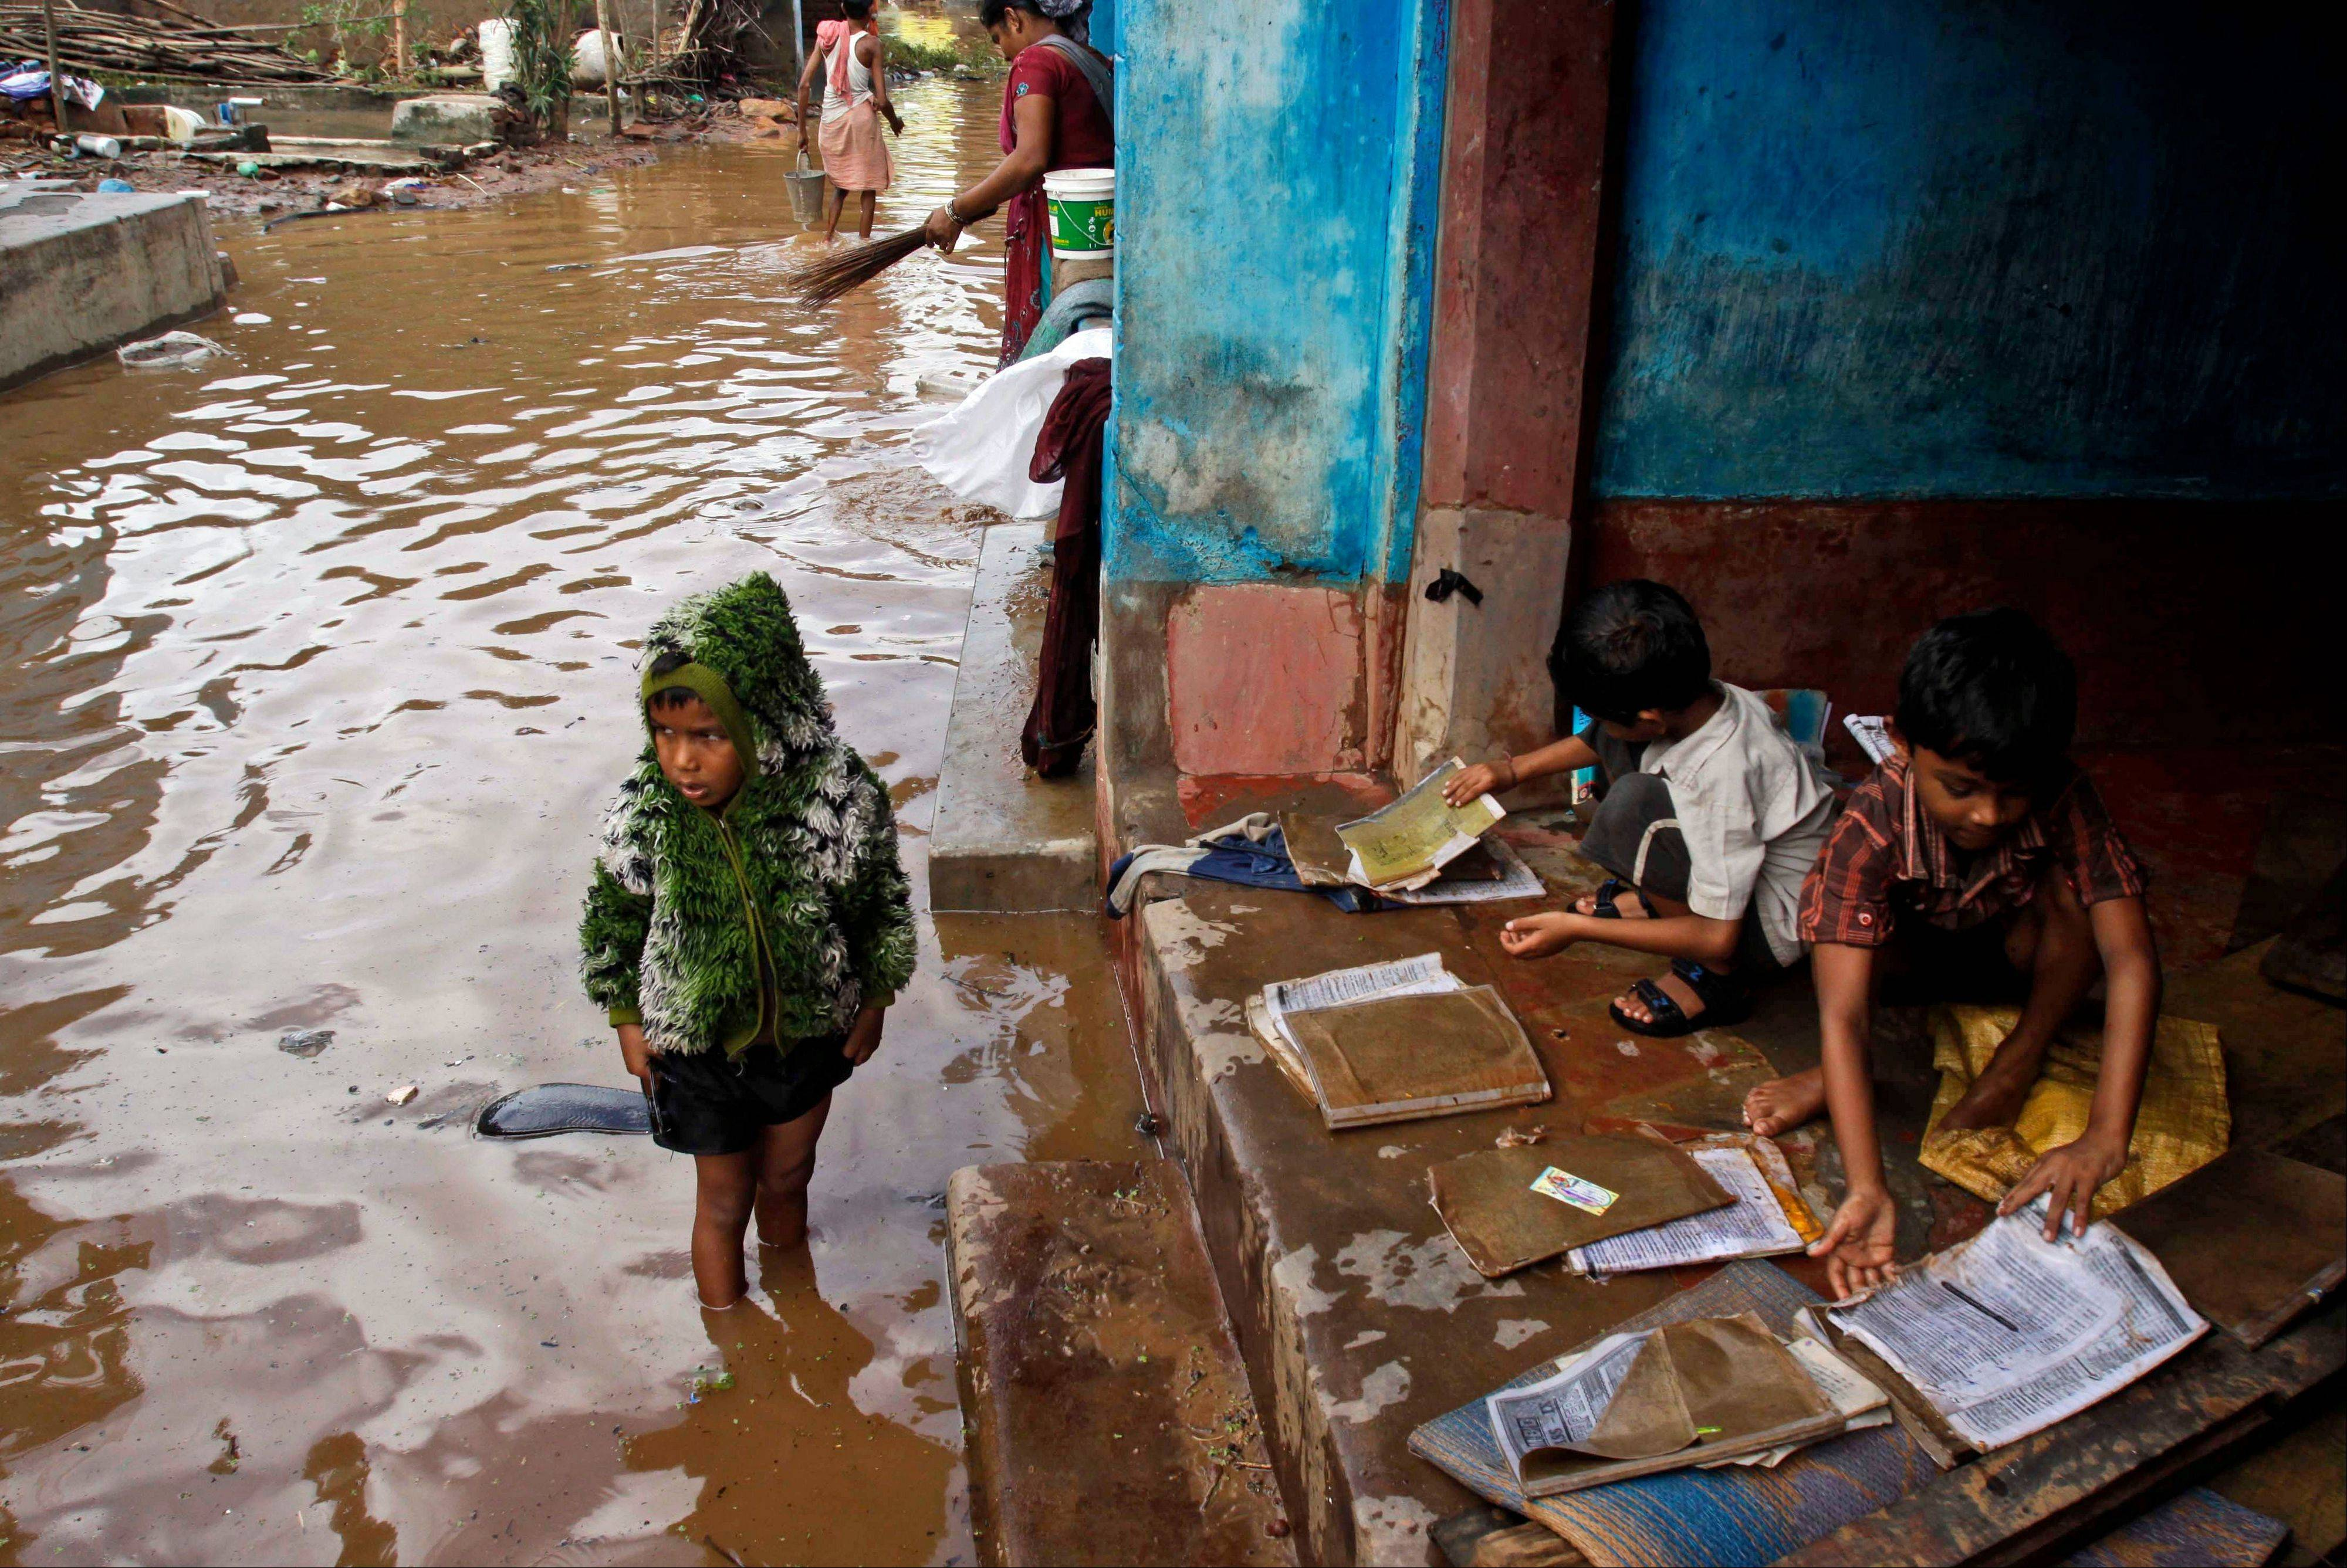 Indian village children lay out their floodwater drenched books to dry at Podapadar in Ganjam district of Orissa state, India. Days of torrential rains have unleashed floods in the states of Andhra Pradesh and Orissa.